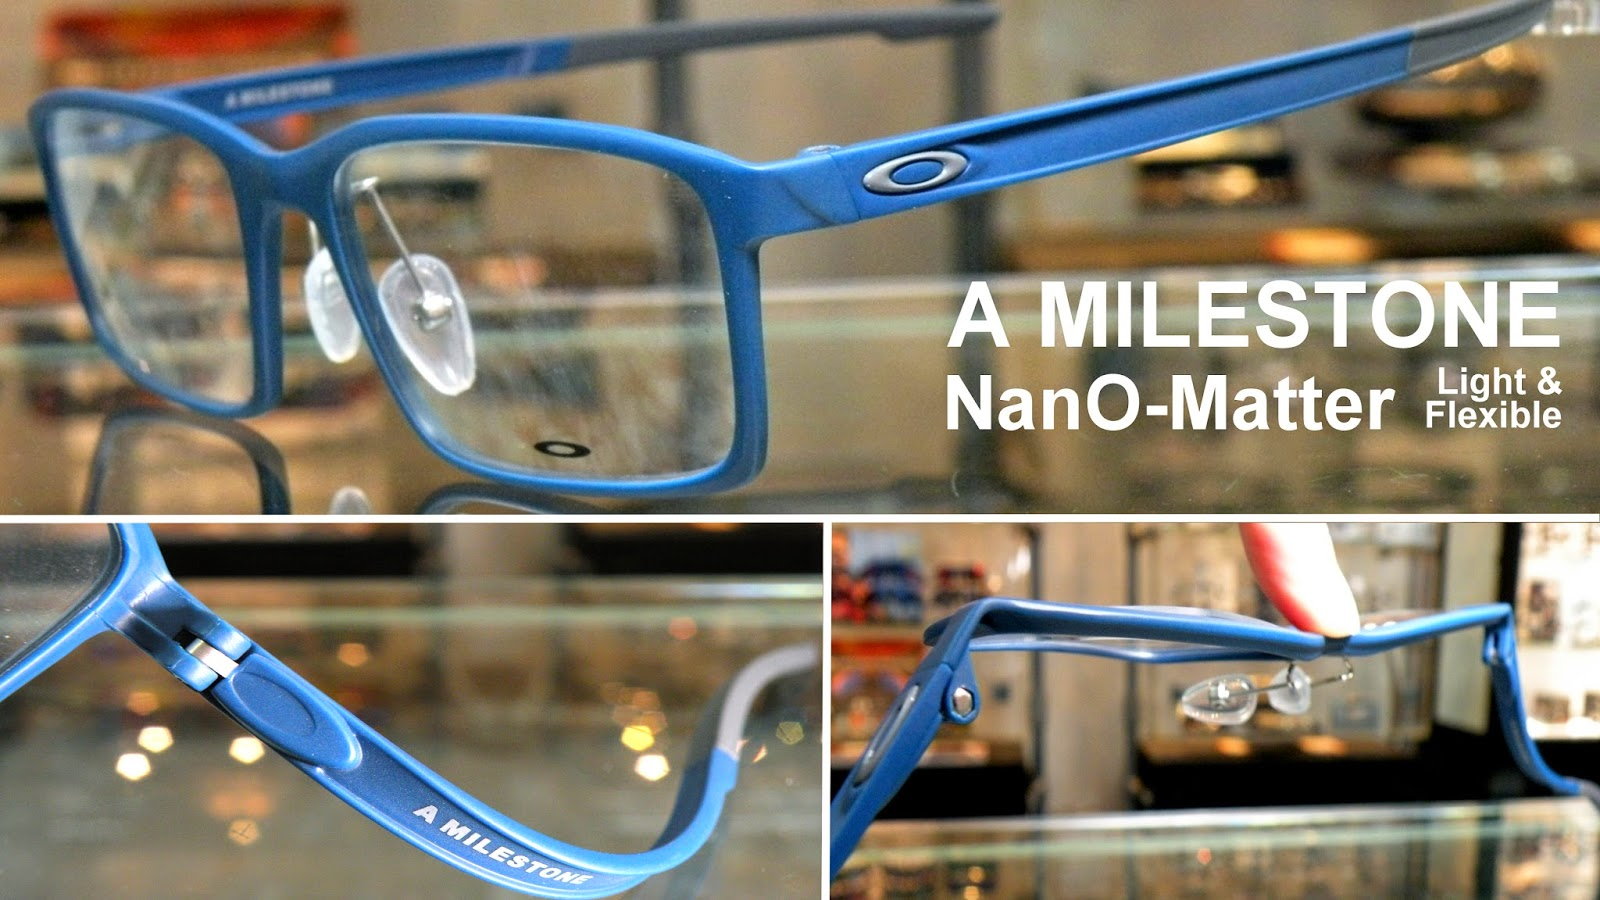 Oakley 眼鏡架 A MILESTONE blue color NanO-Matter